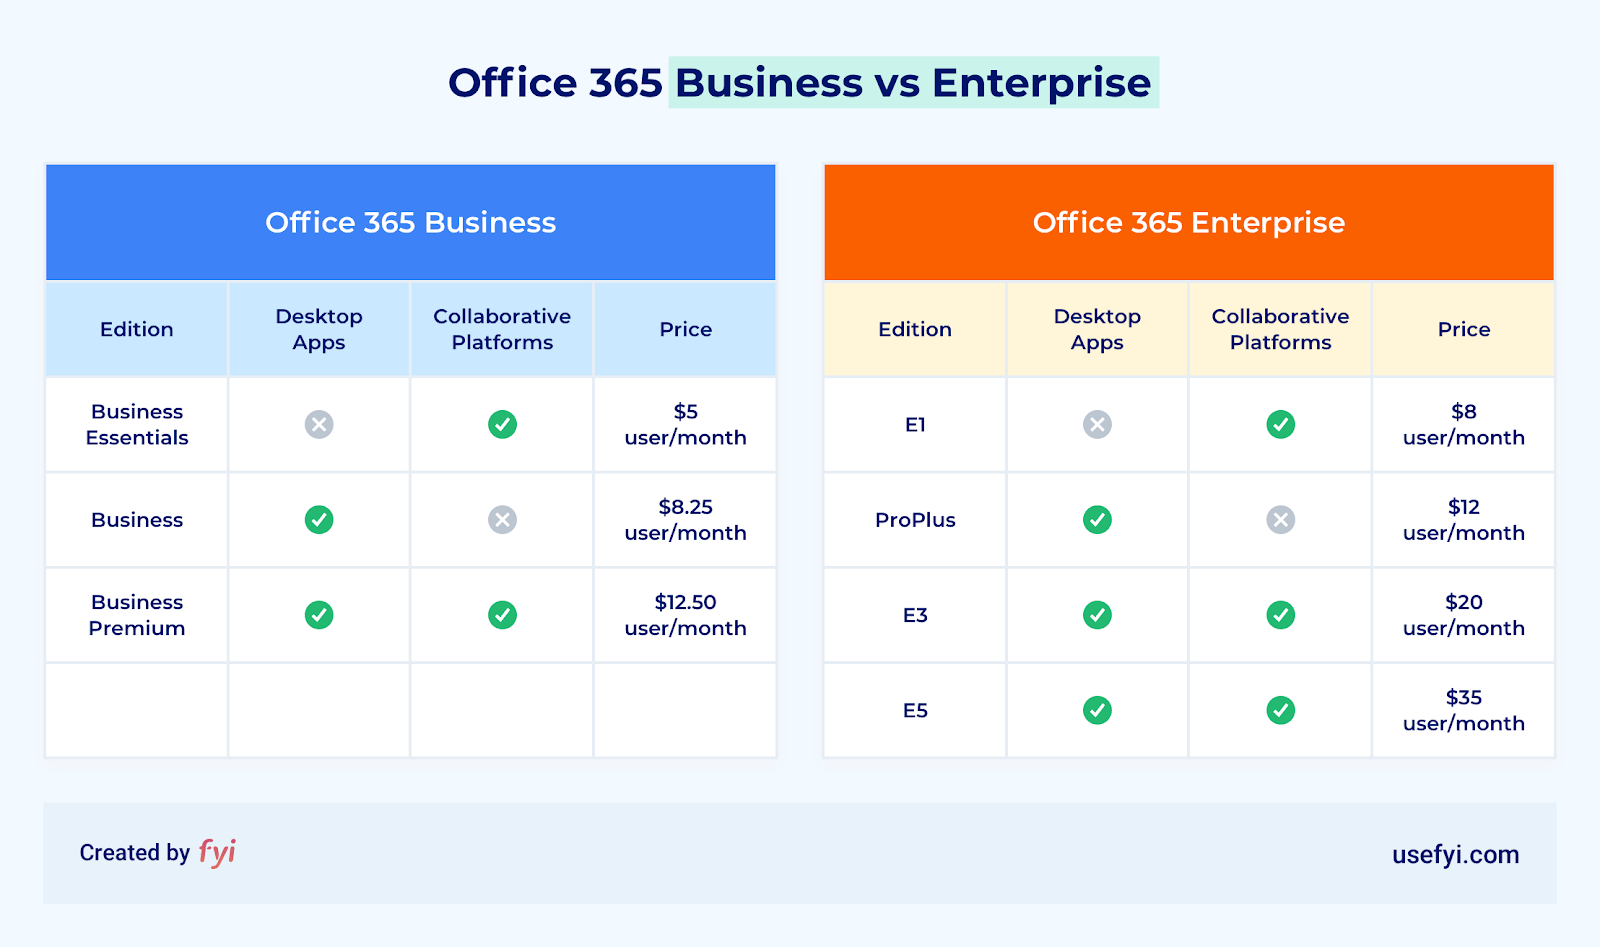 office 365 business vs enterprise comparison